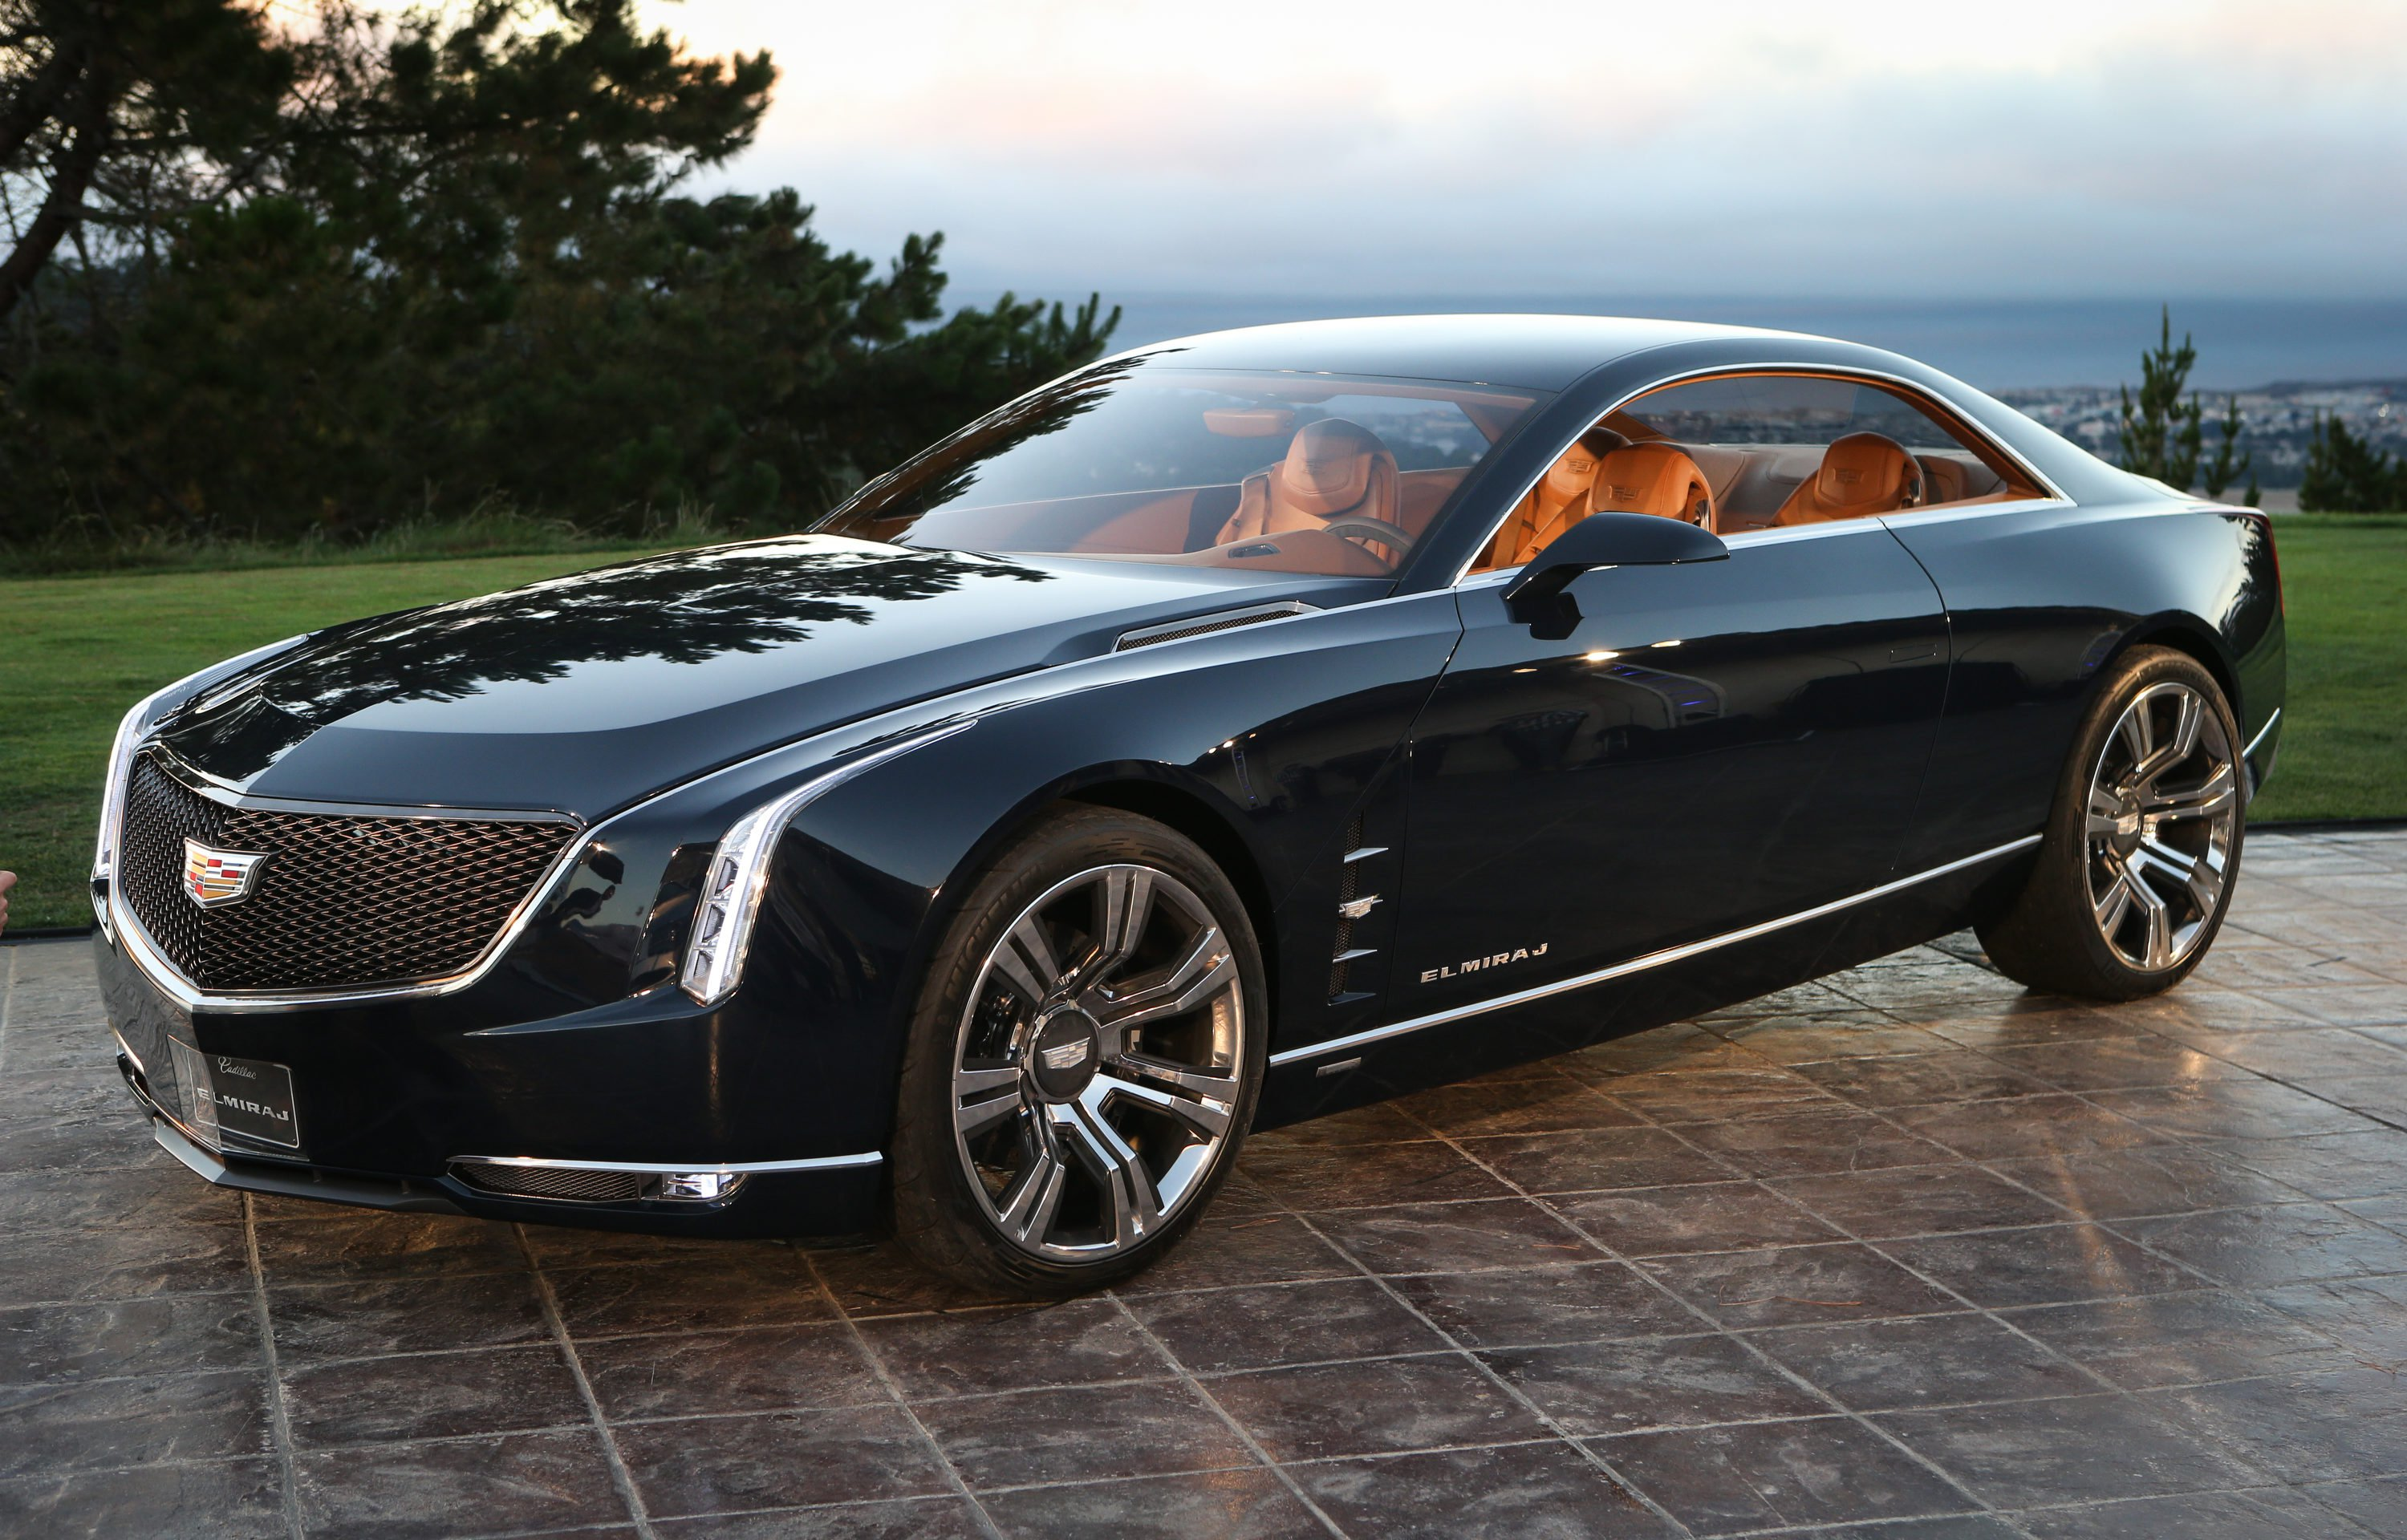 2016 Cadillac Xlr   pictures, information and specs - Auto